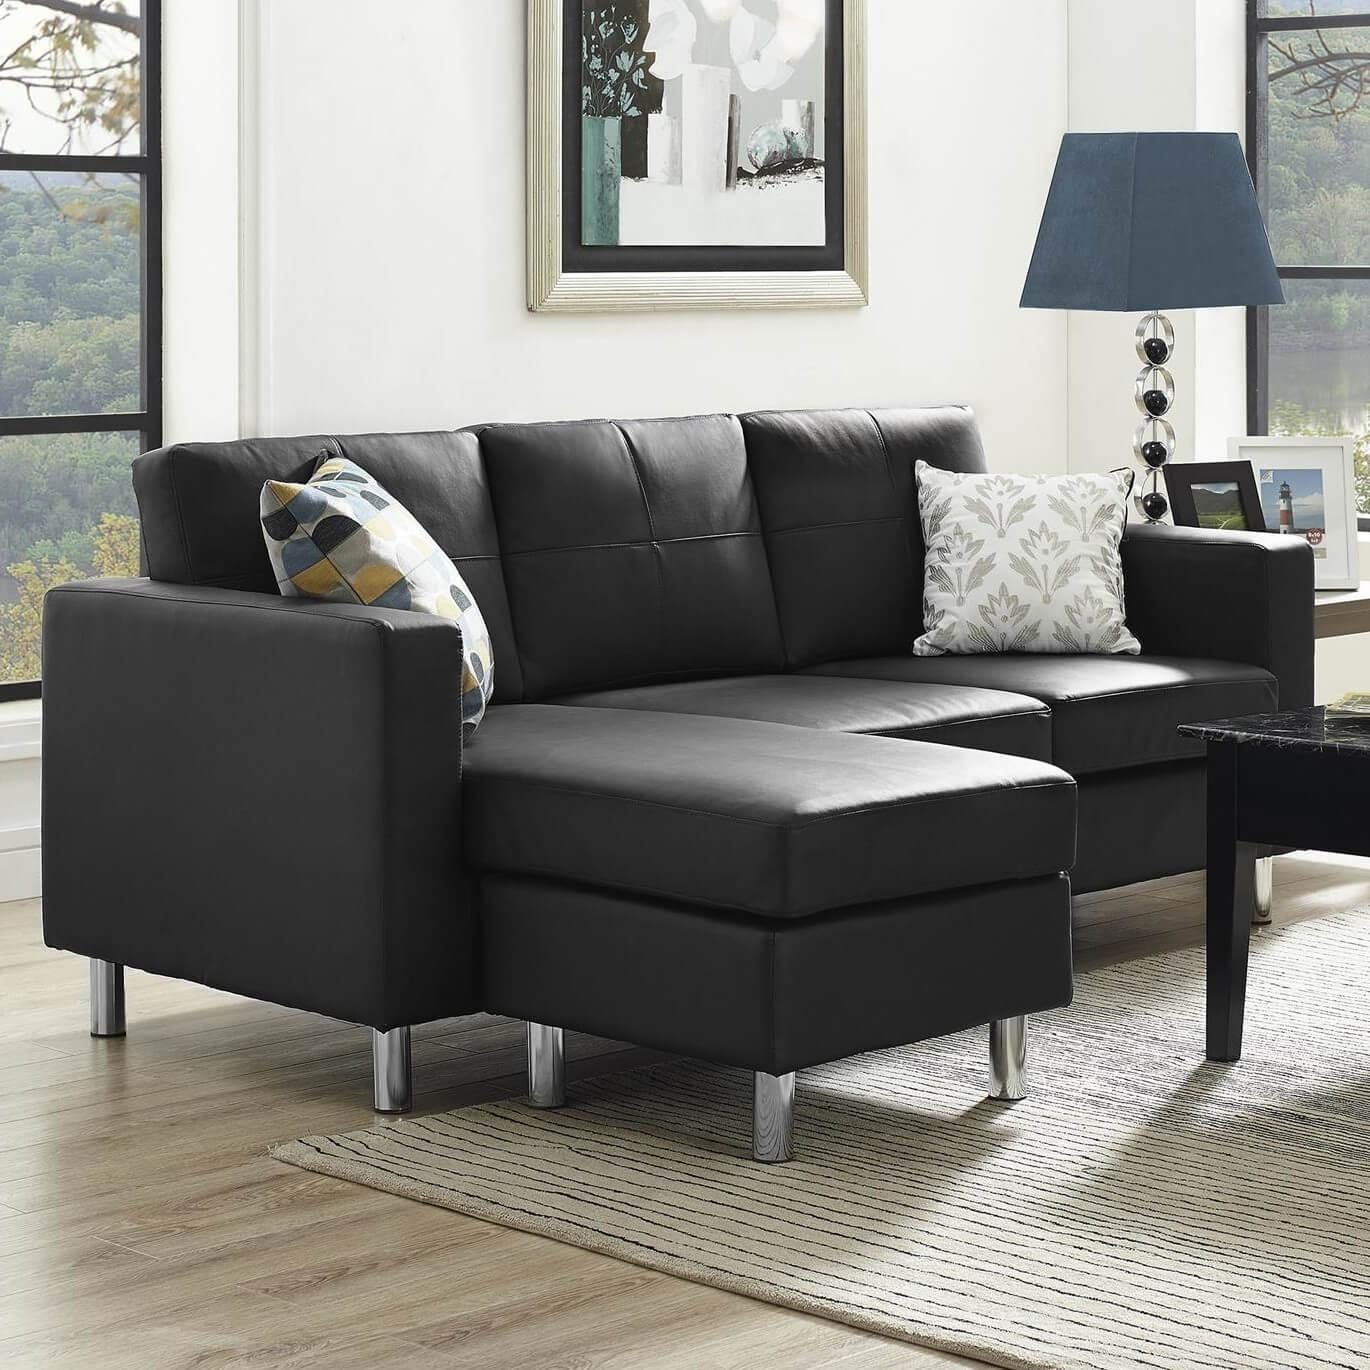 13 Sectional Sofas Under $500 (Several Styles) | Home Stratosphere For Black Microfiber Sectional Sofas (Image 1 of 20)